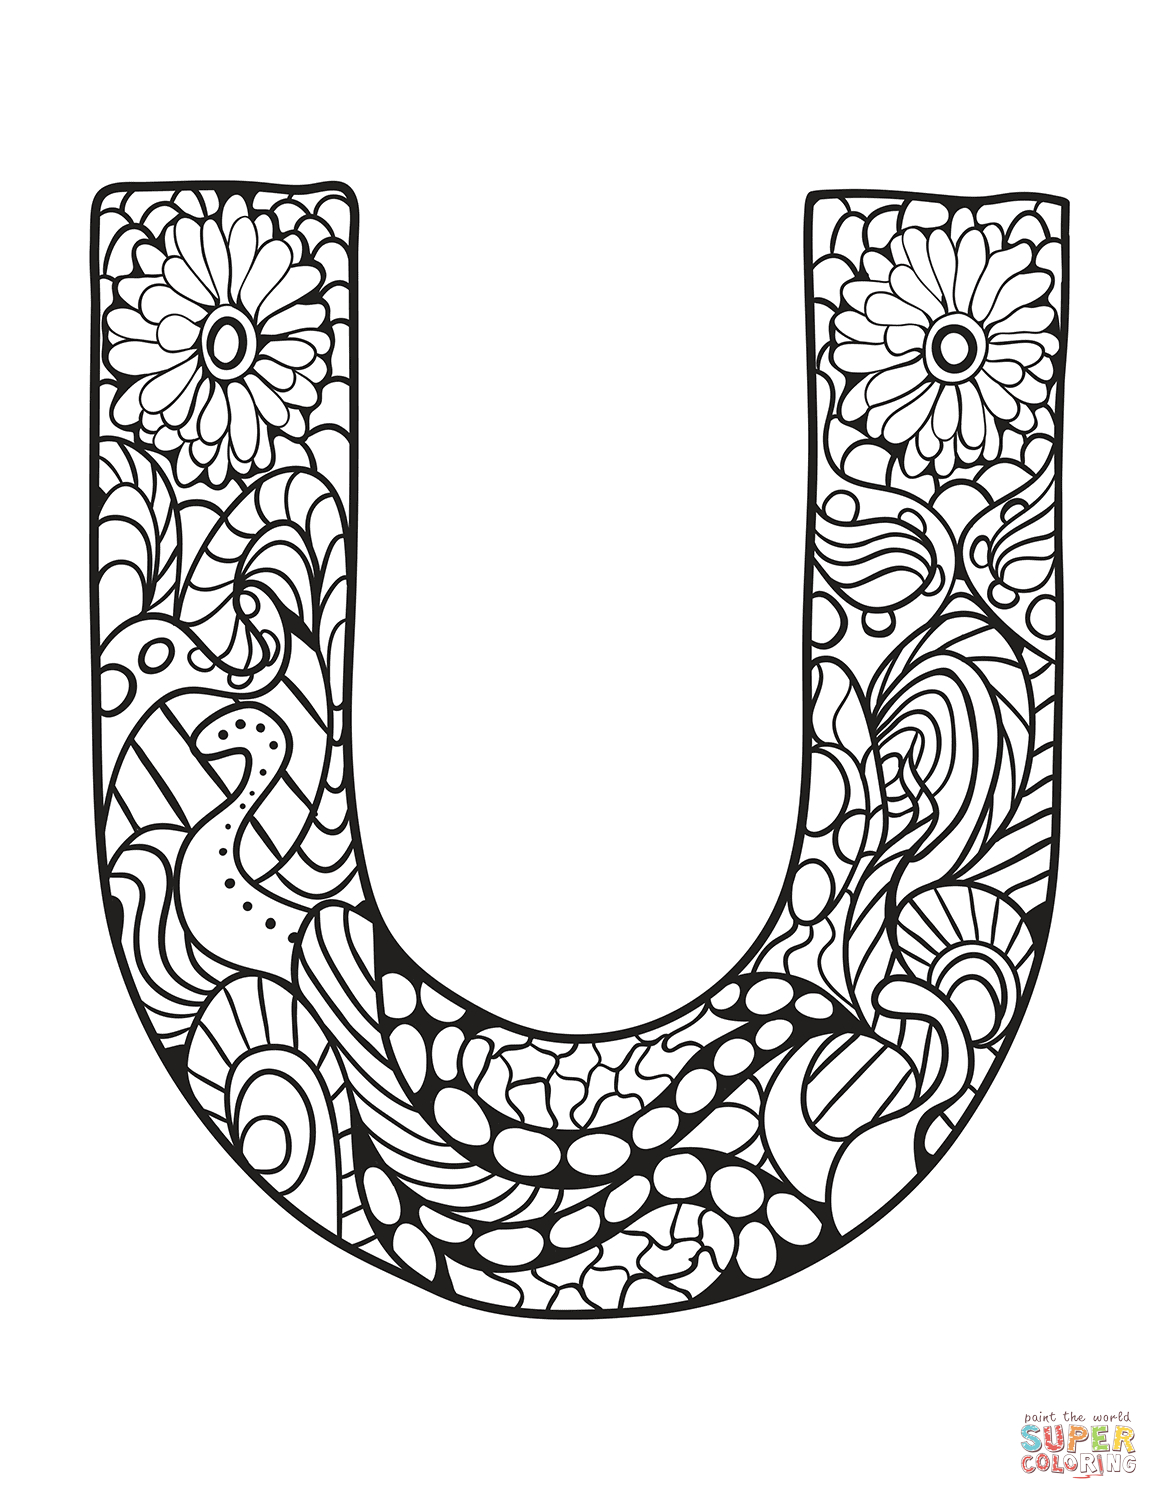 Letter U Zentangle Coloring Page   Free Printable Coloring Pages - Free Printable Letter U Coloring Pages